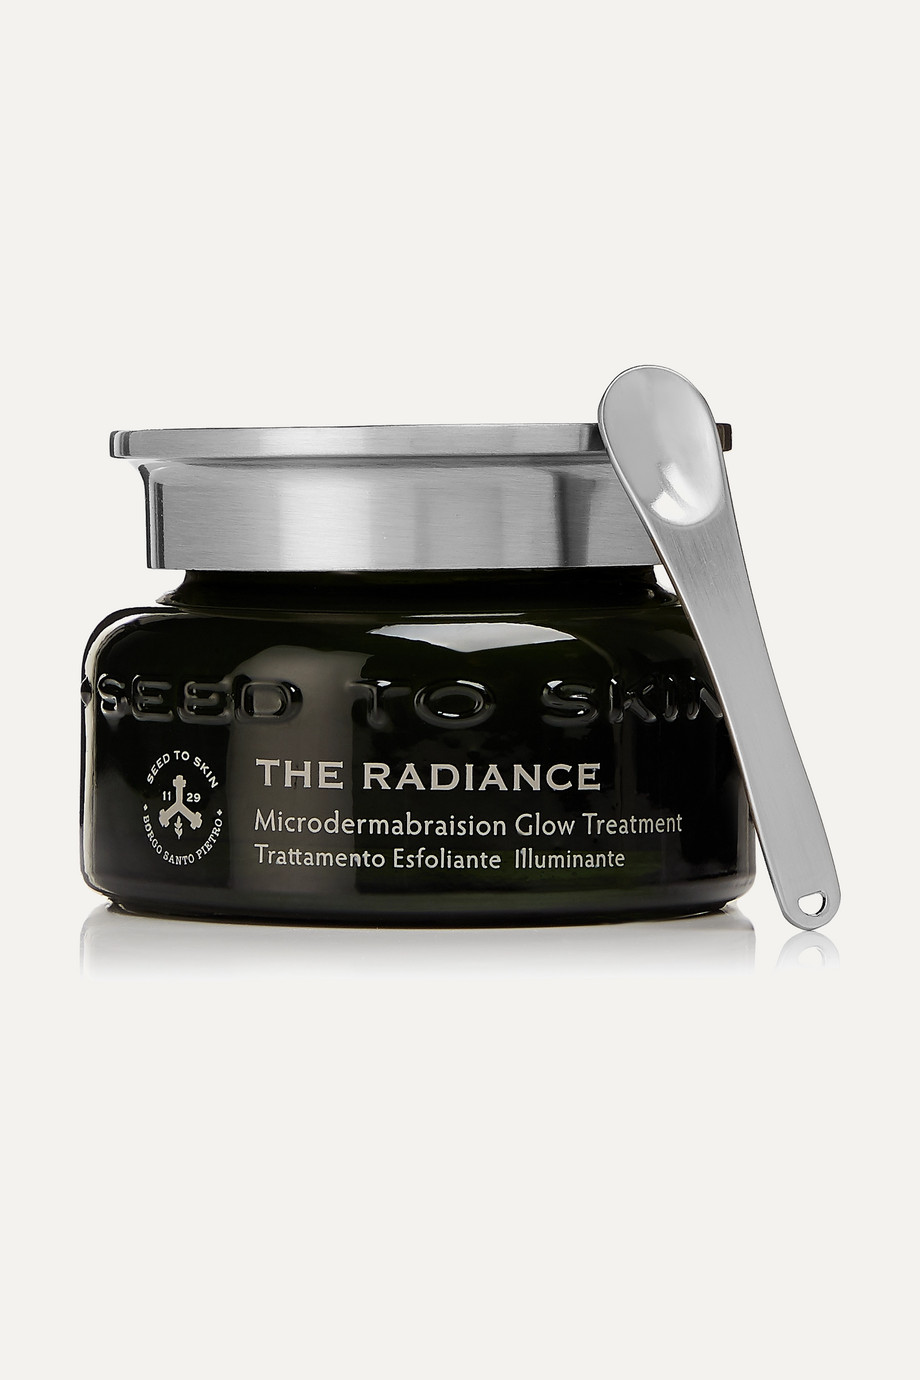 Seed to Skin The Radiance Microdermabrasion Glow Treatment, 50 ml – Peeling